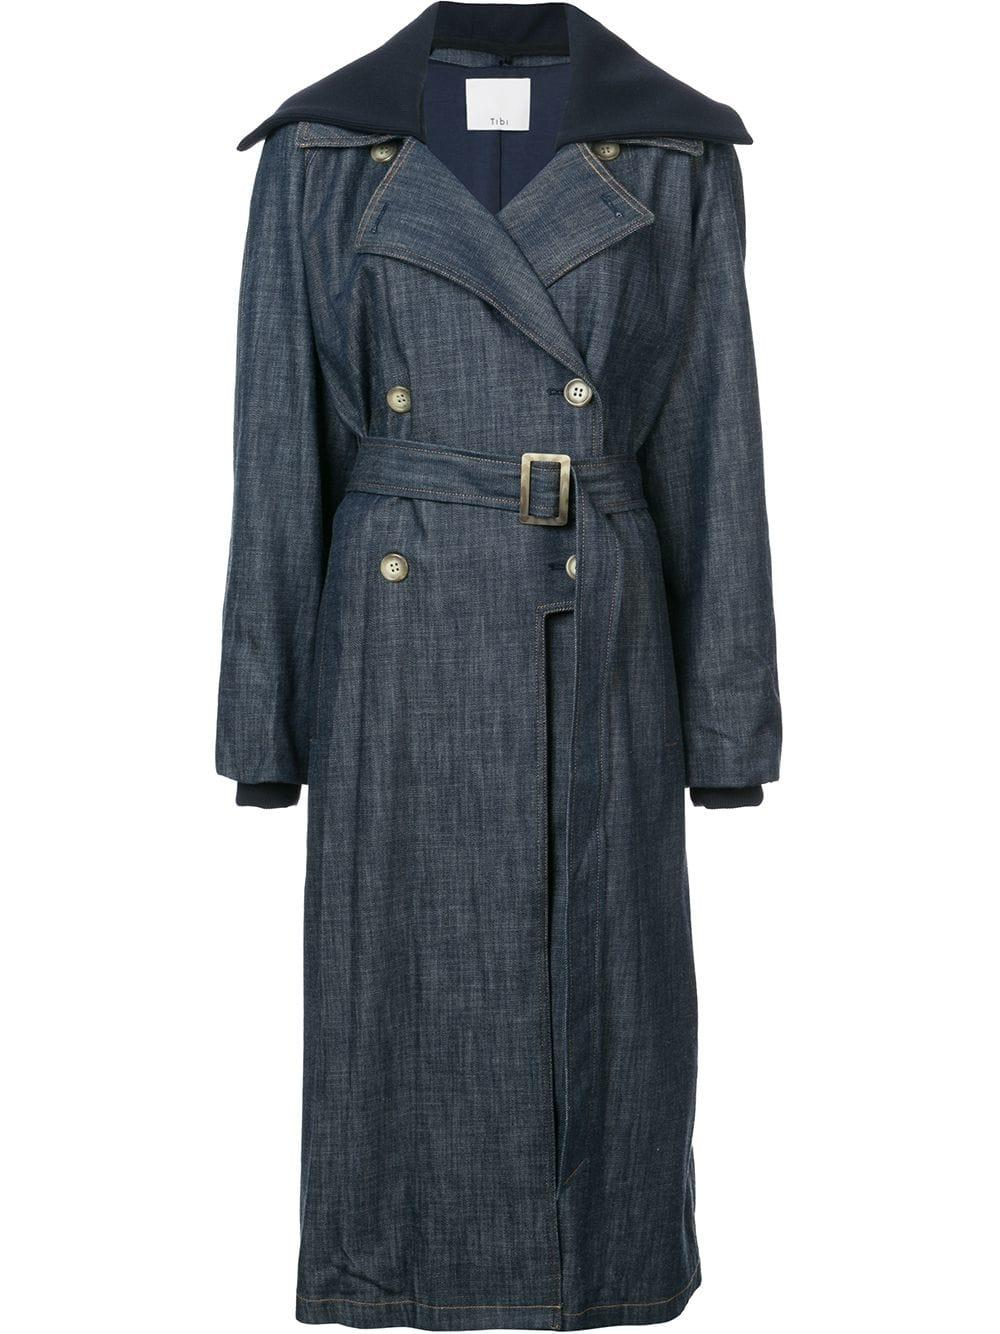 Tibi Belted Denim Trench Coat - Blue